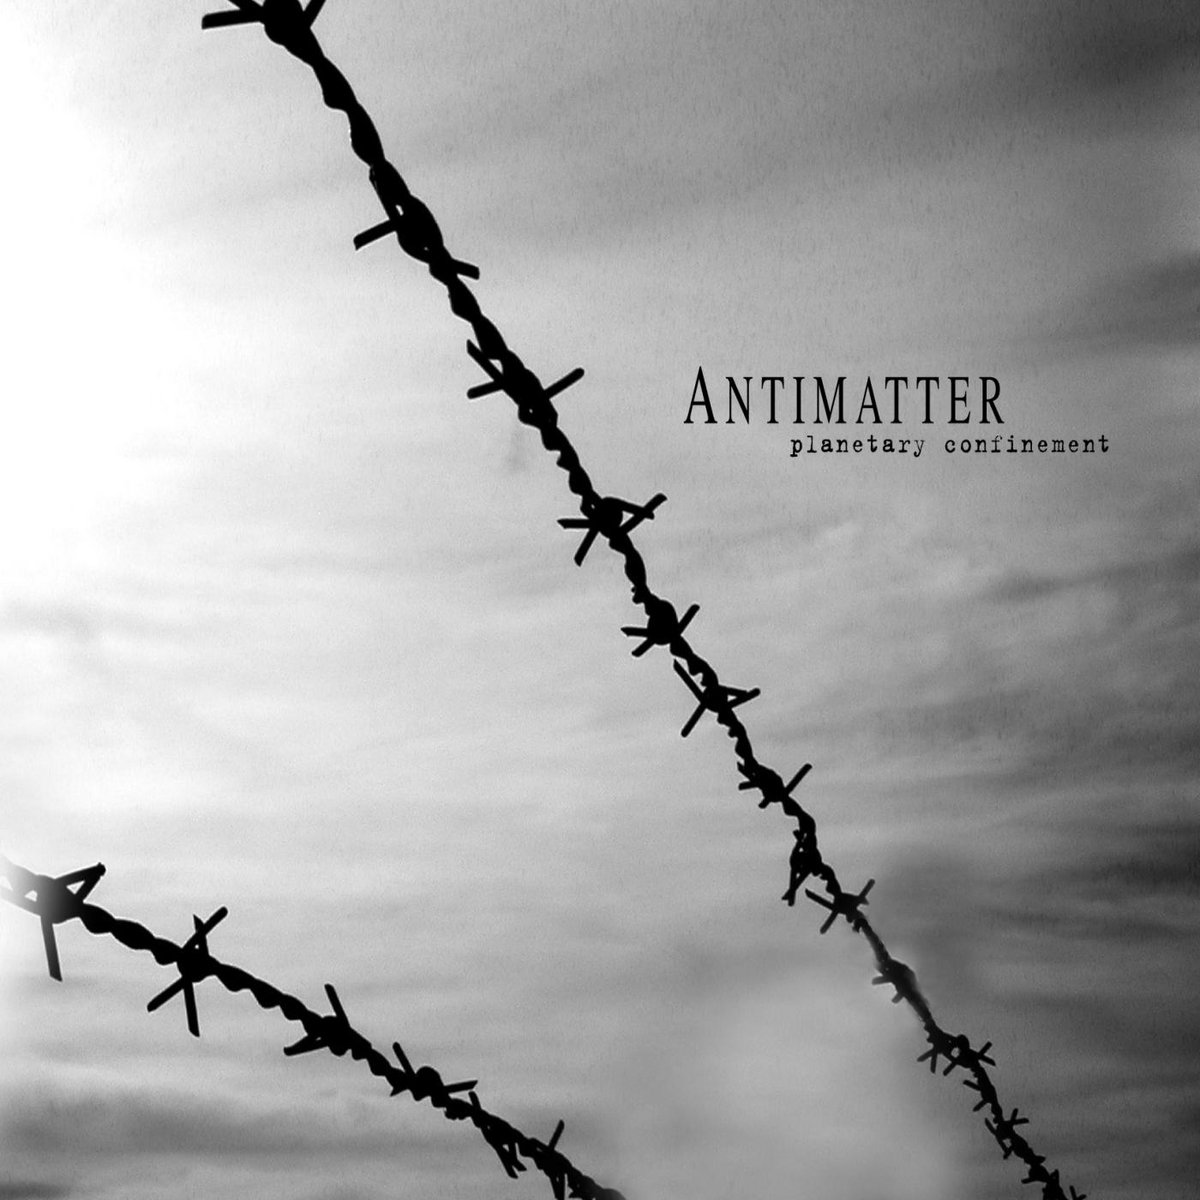 antimatter planetary confinement